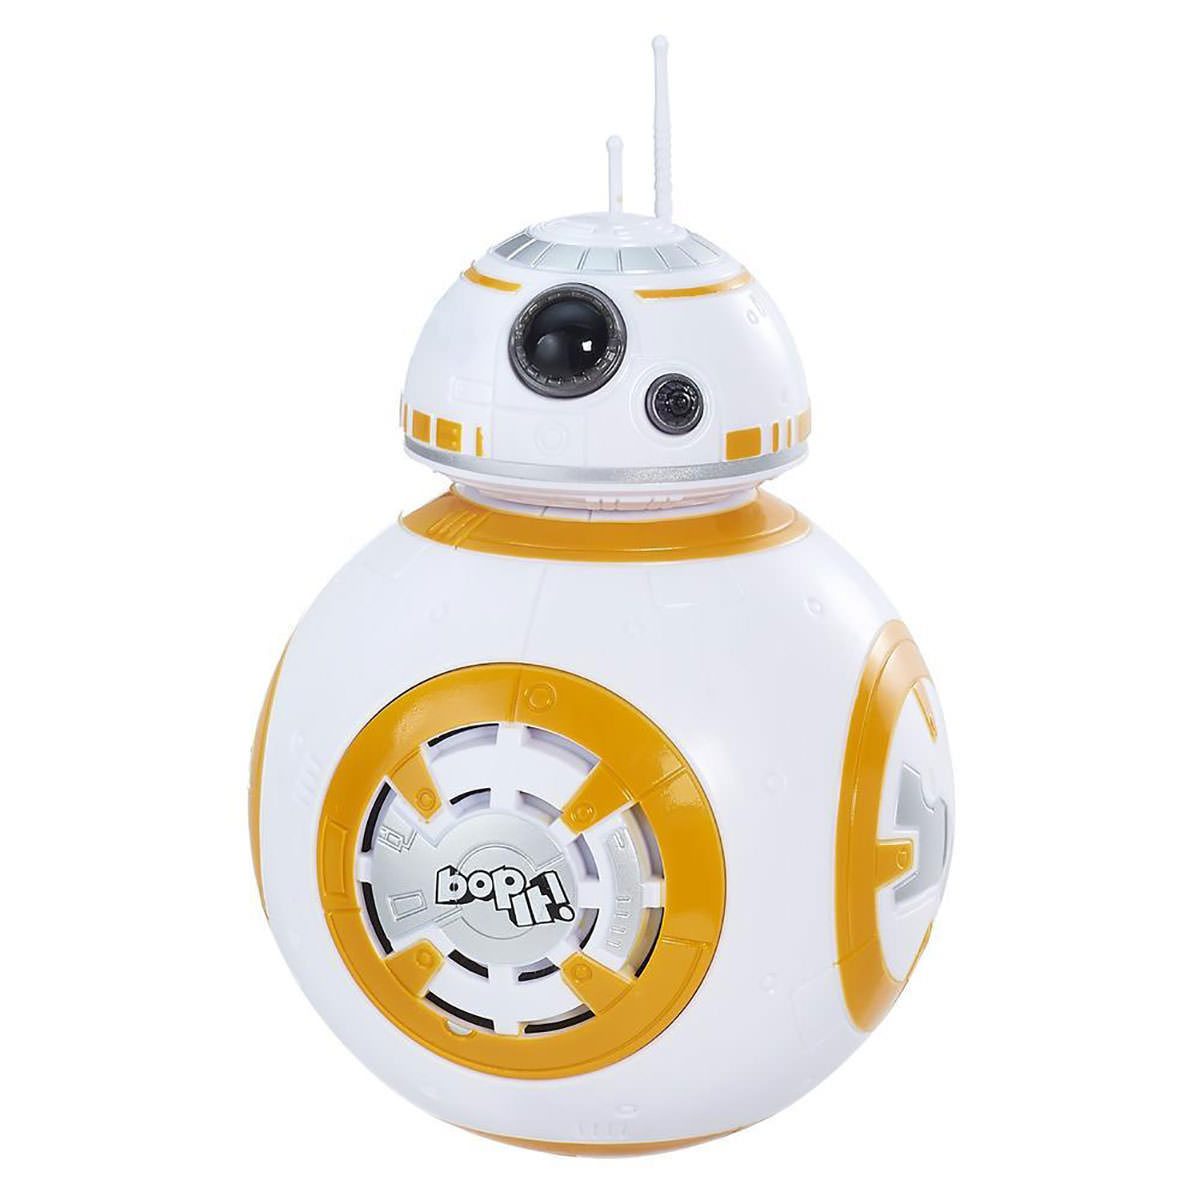 Star Wars BB-8 Bop It!